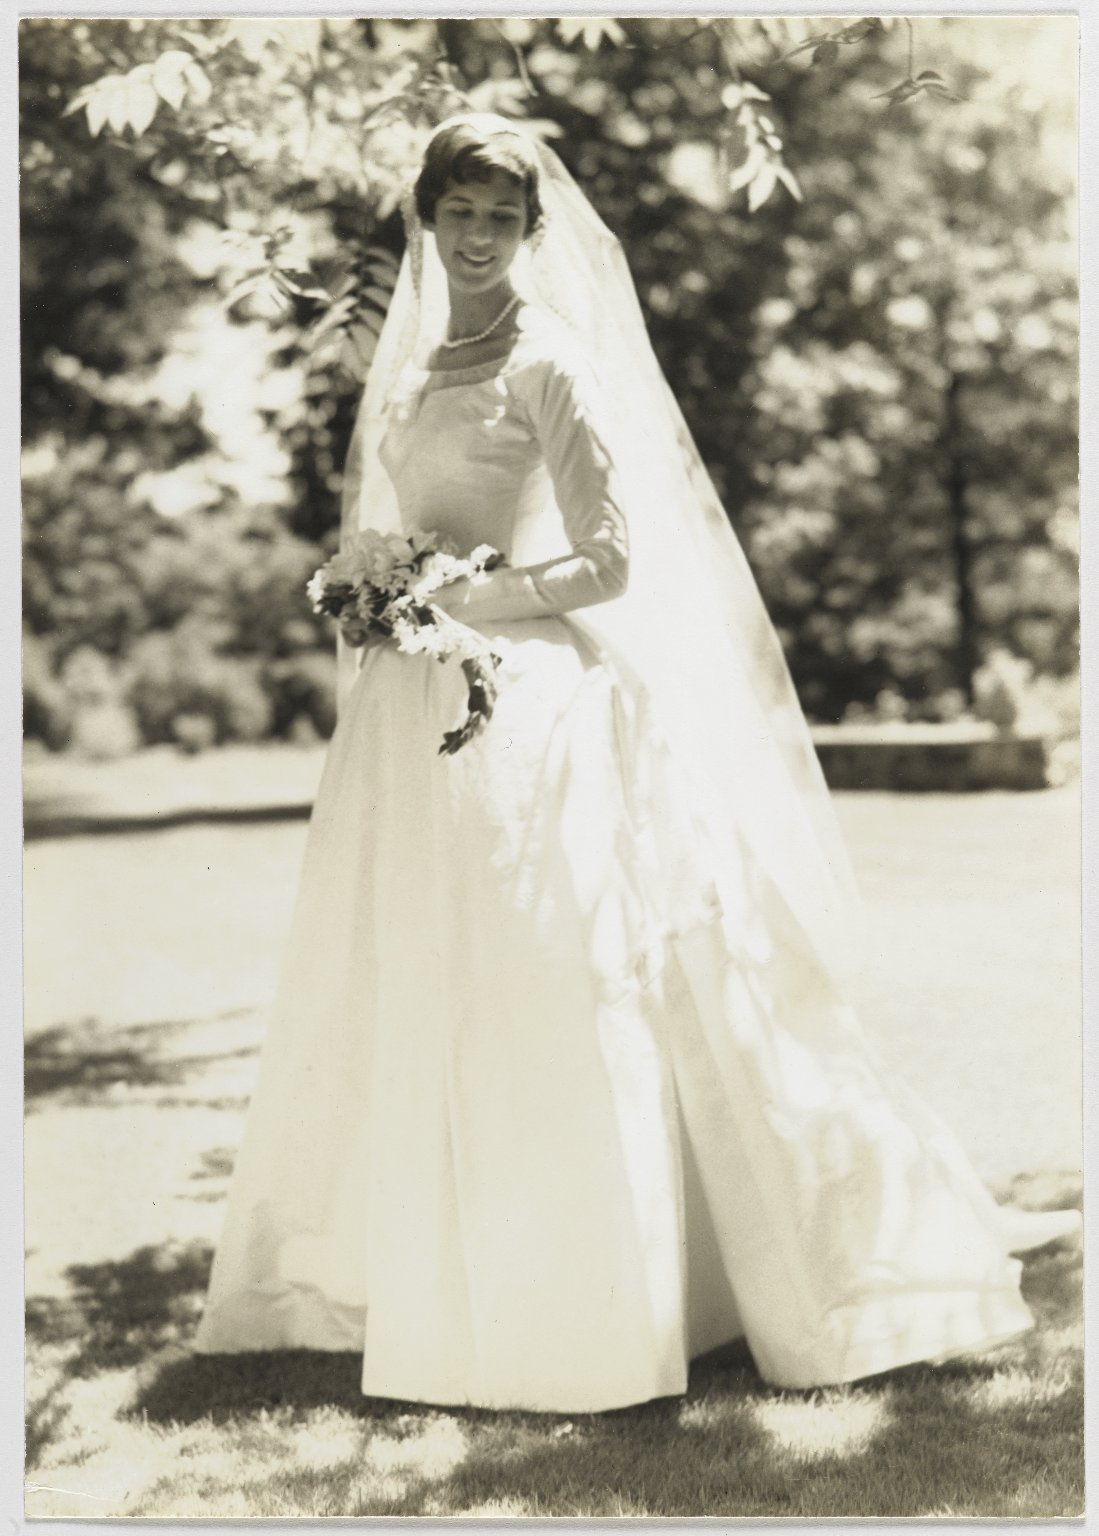 Brooklyn Museum: [Untitled] (Bride)